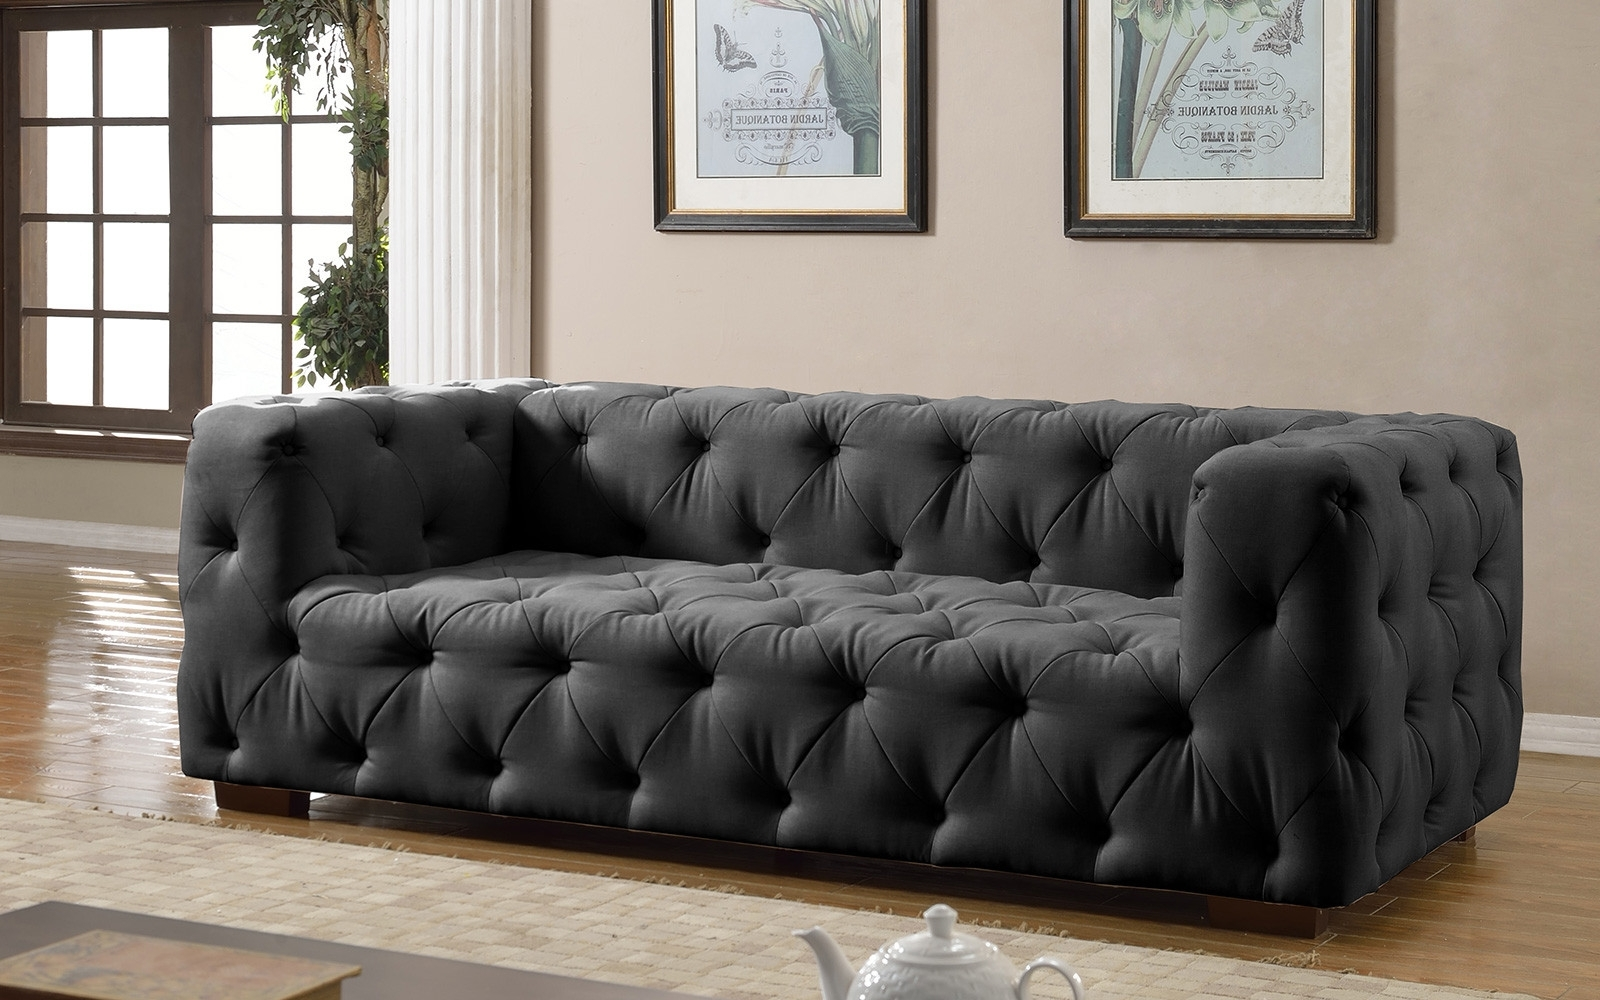 Luxurious Modern Large Tufted Linen Fabric Sofa – Walmart Intended For Current Tufted Linen Sofas (View 9 of 15)